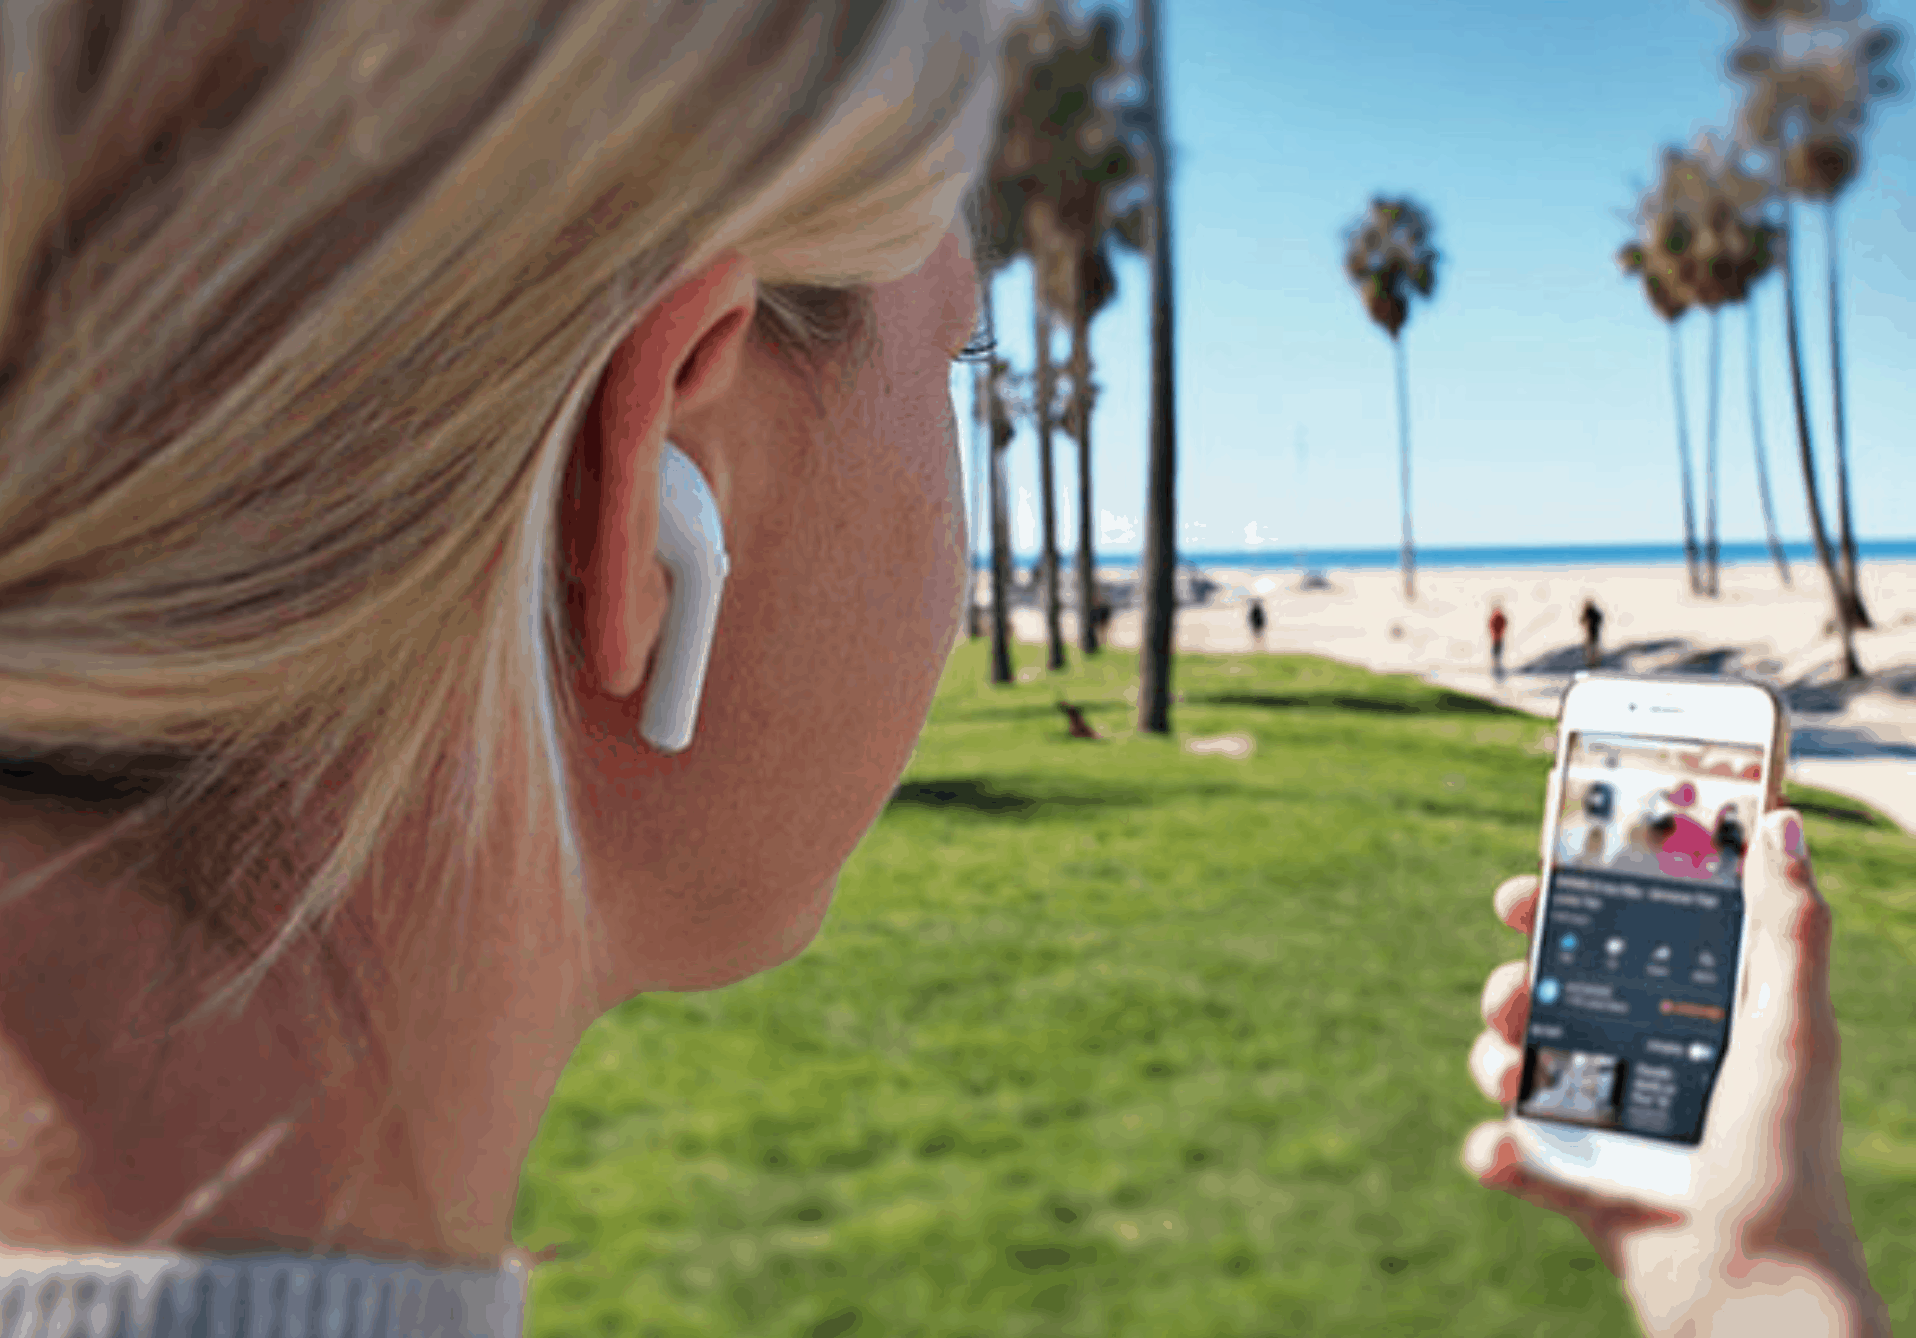 AirPods Alternative AirSounds True Wireless Earbuds